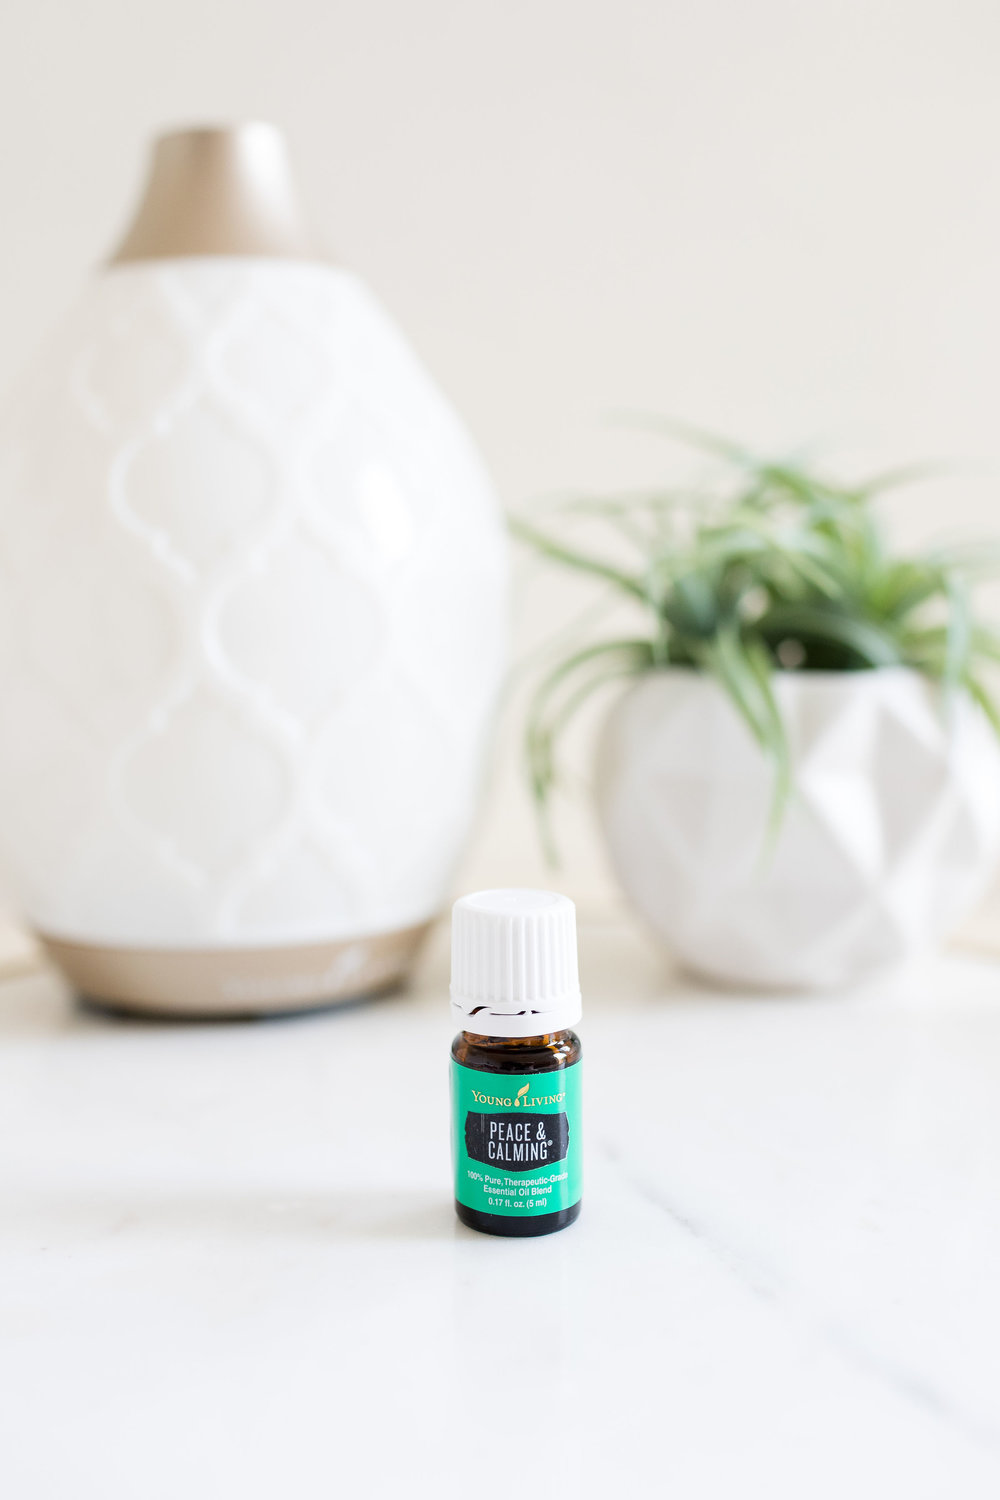 PEACE AND CALMING - + SMELLS LIKE A DREAM…SO GREAT AS PERFUME+ EXTREMELY CALMING+ HELP CALM OVERACTIVE CHILDREN+ HELP WIND DOWN AT BEDTIME+ DIFFUSE FOR CALM ENVIRONMENT AND AT NIGHT+ APPLY TO CHEST WHEN THE CRUD HITS TO HELP CALM DOWN THE RESPIRATORY SYSTEM